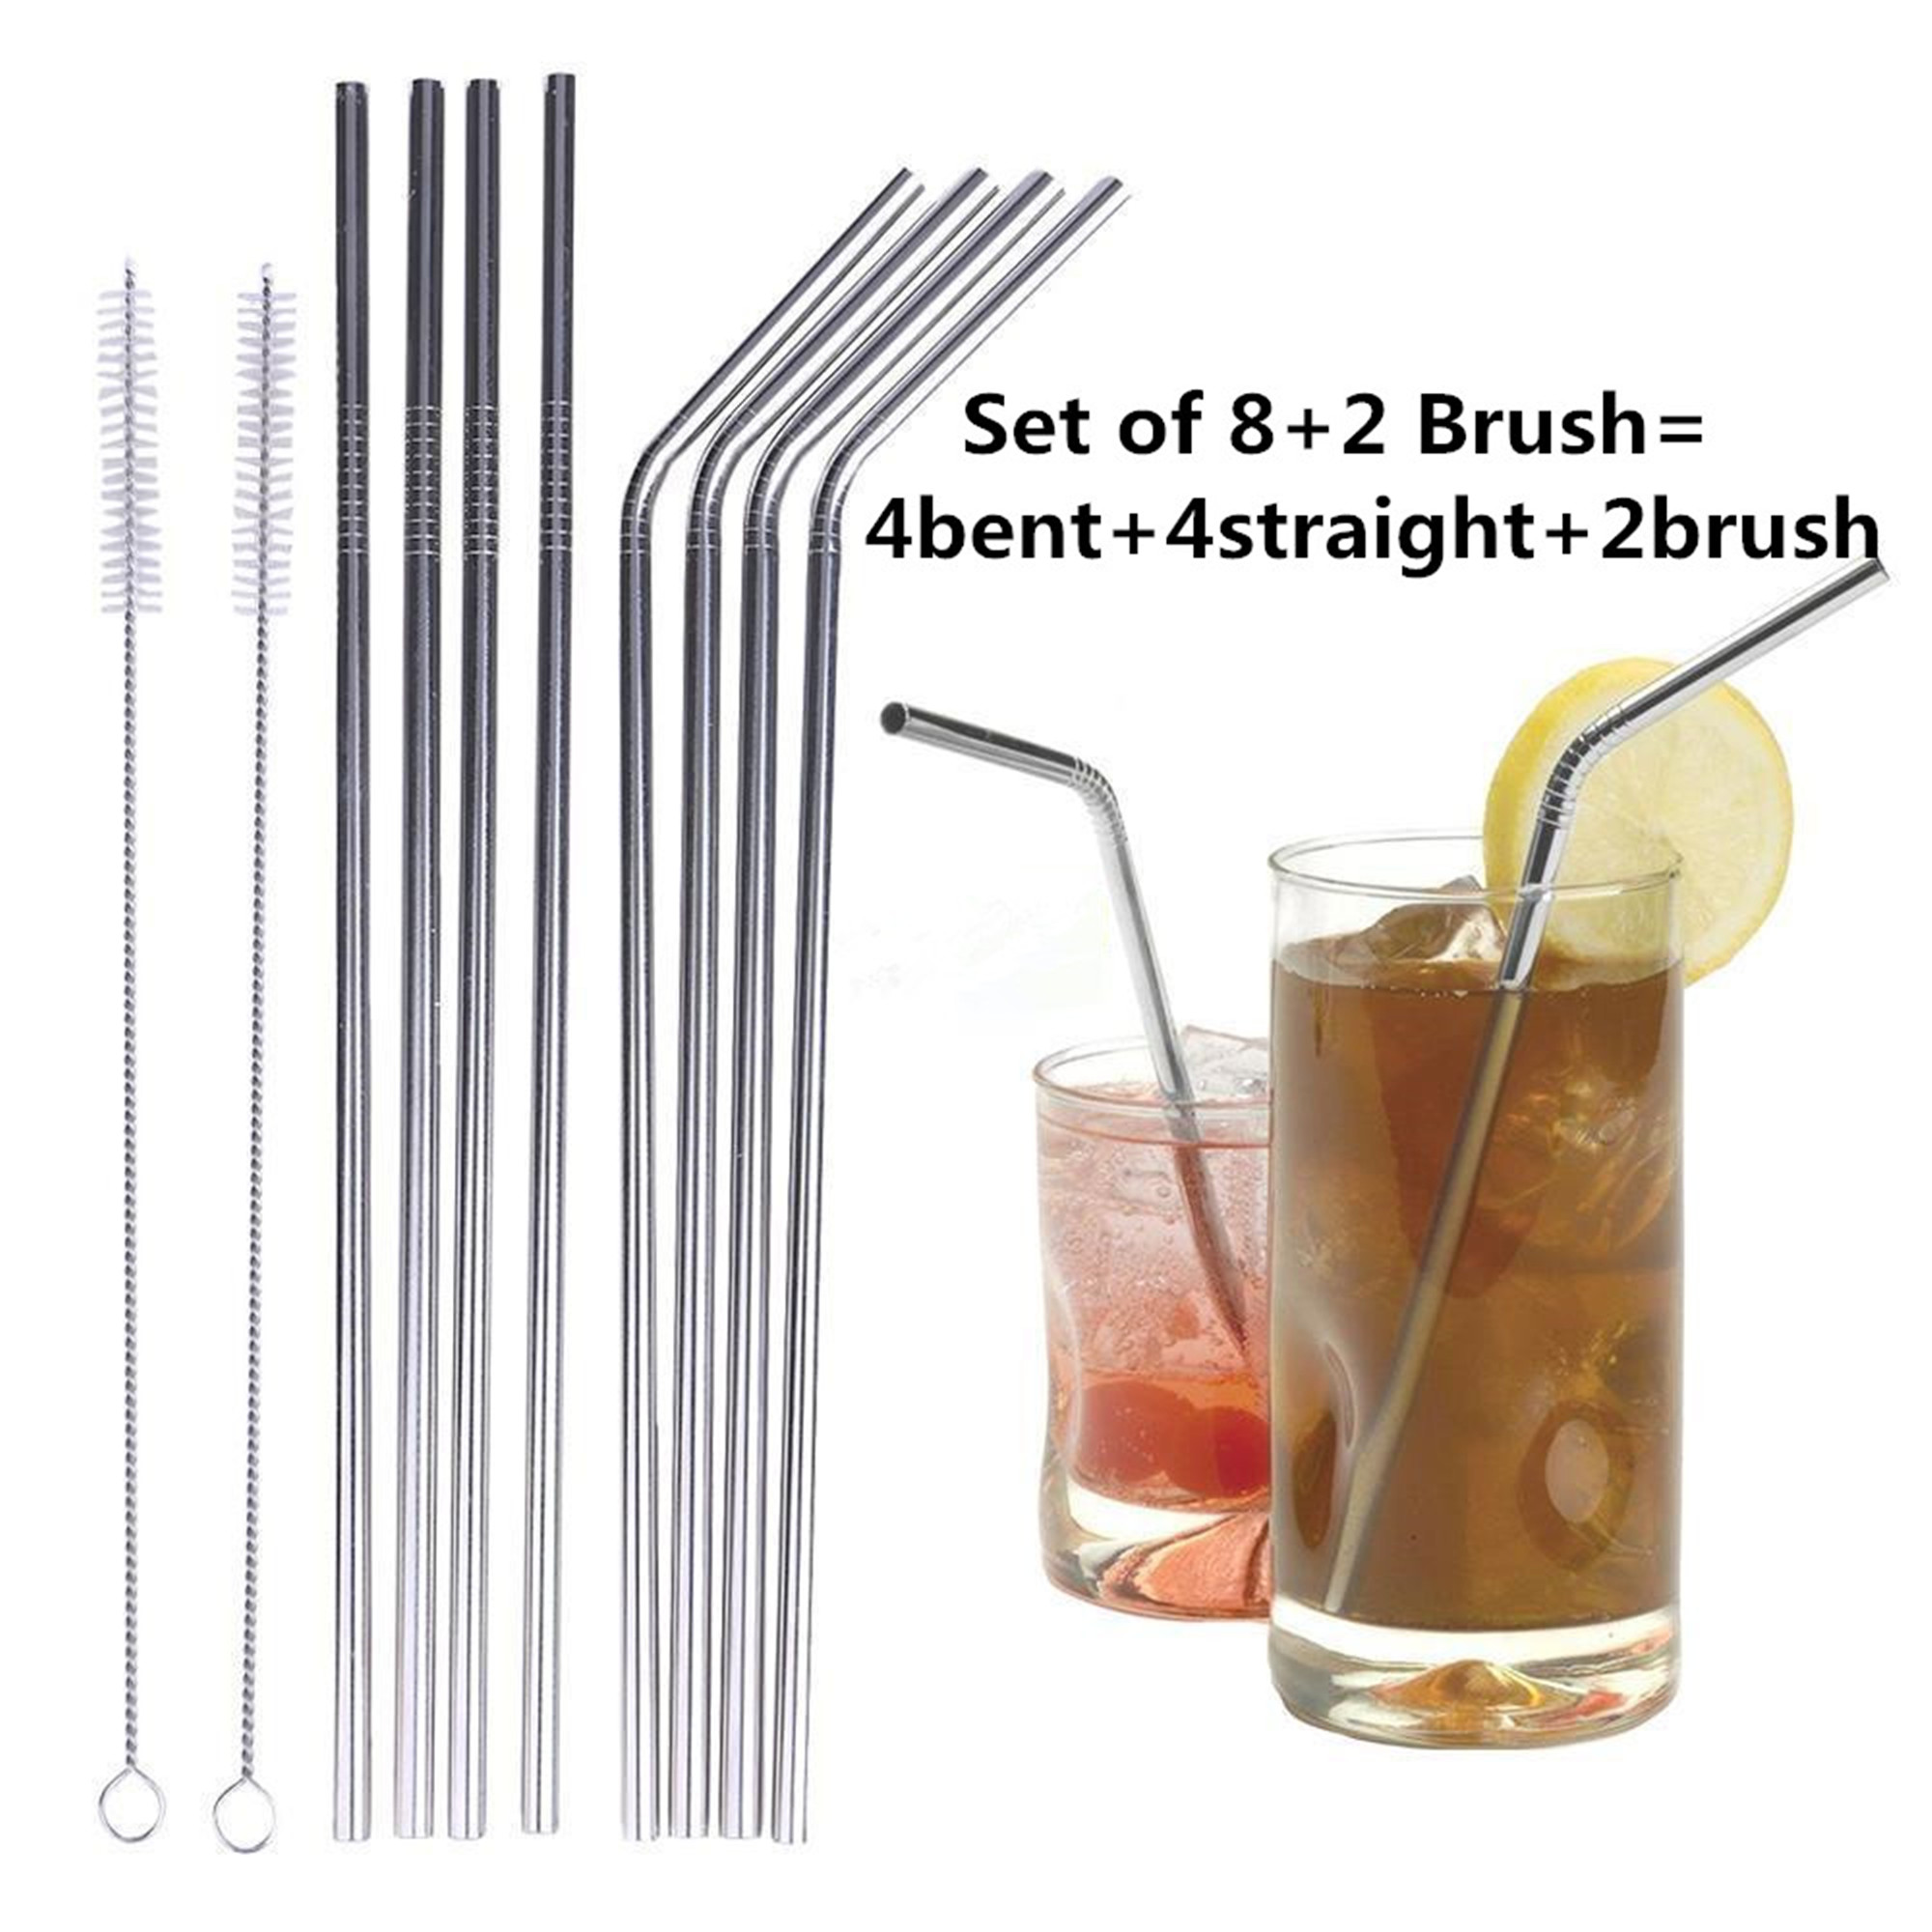 Stainless Steel Drinking Straws Reusable Metal Drinking Straws for 20 Oz Yeti Tumbler Rambler Cups